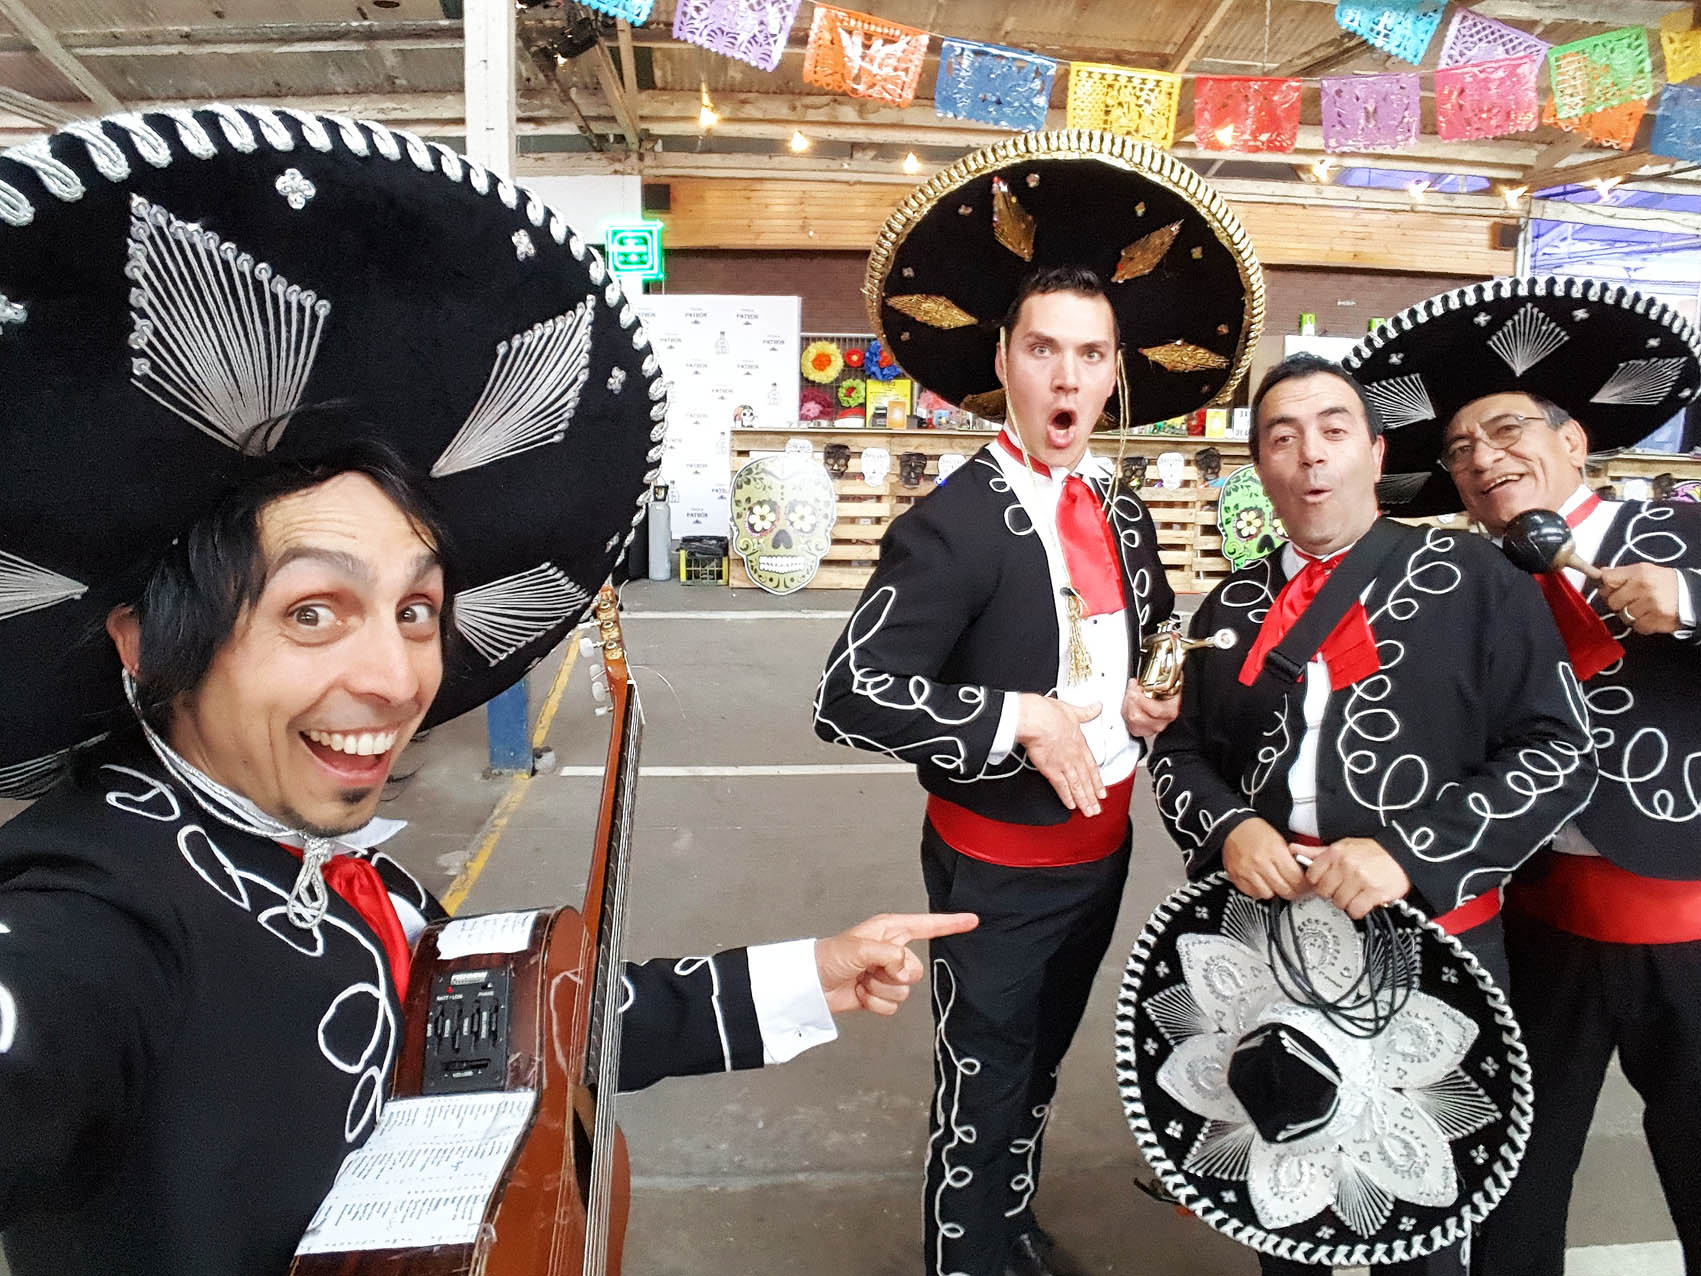 mexican-mariachi-themed-party-day-of-the-dead-australia-singapore-hong-kong